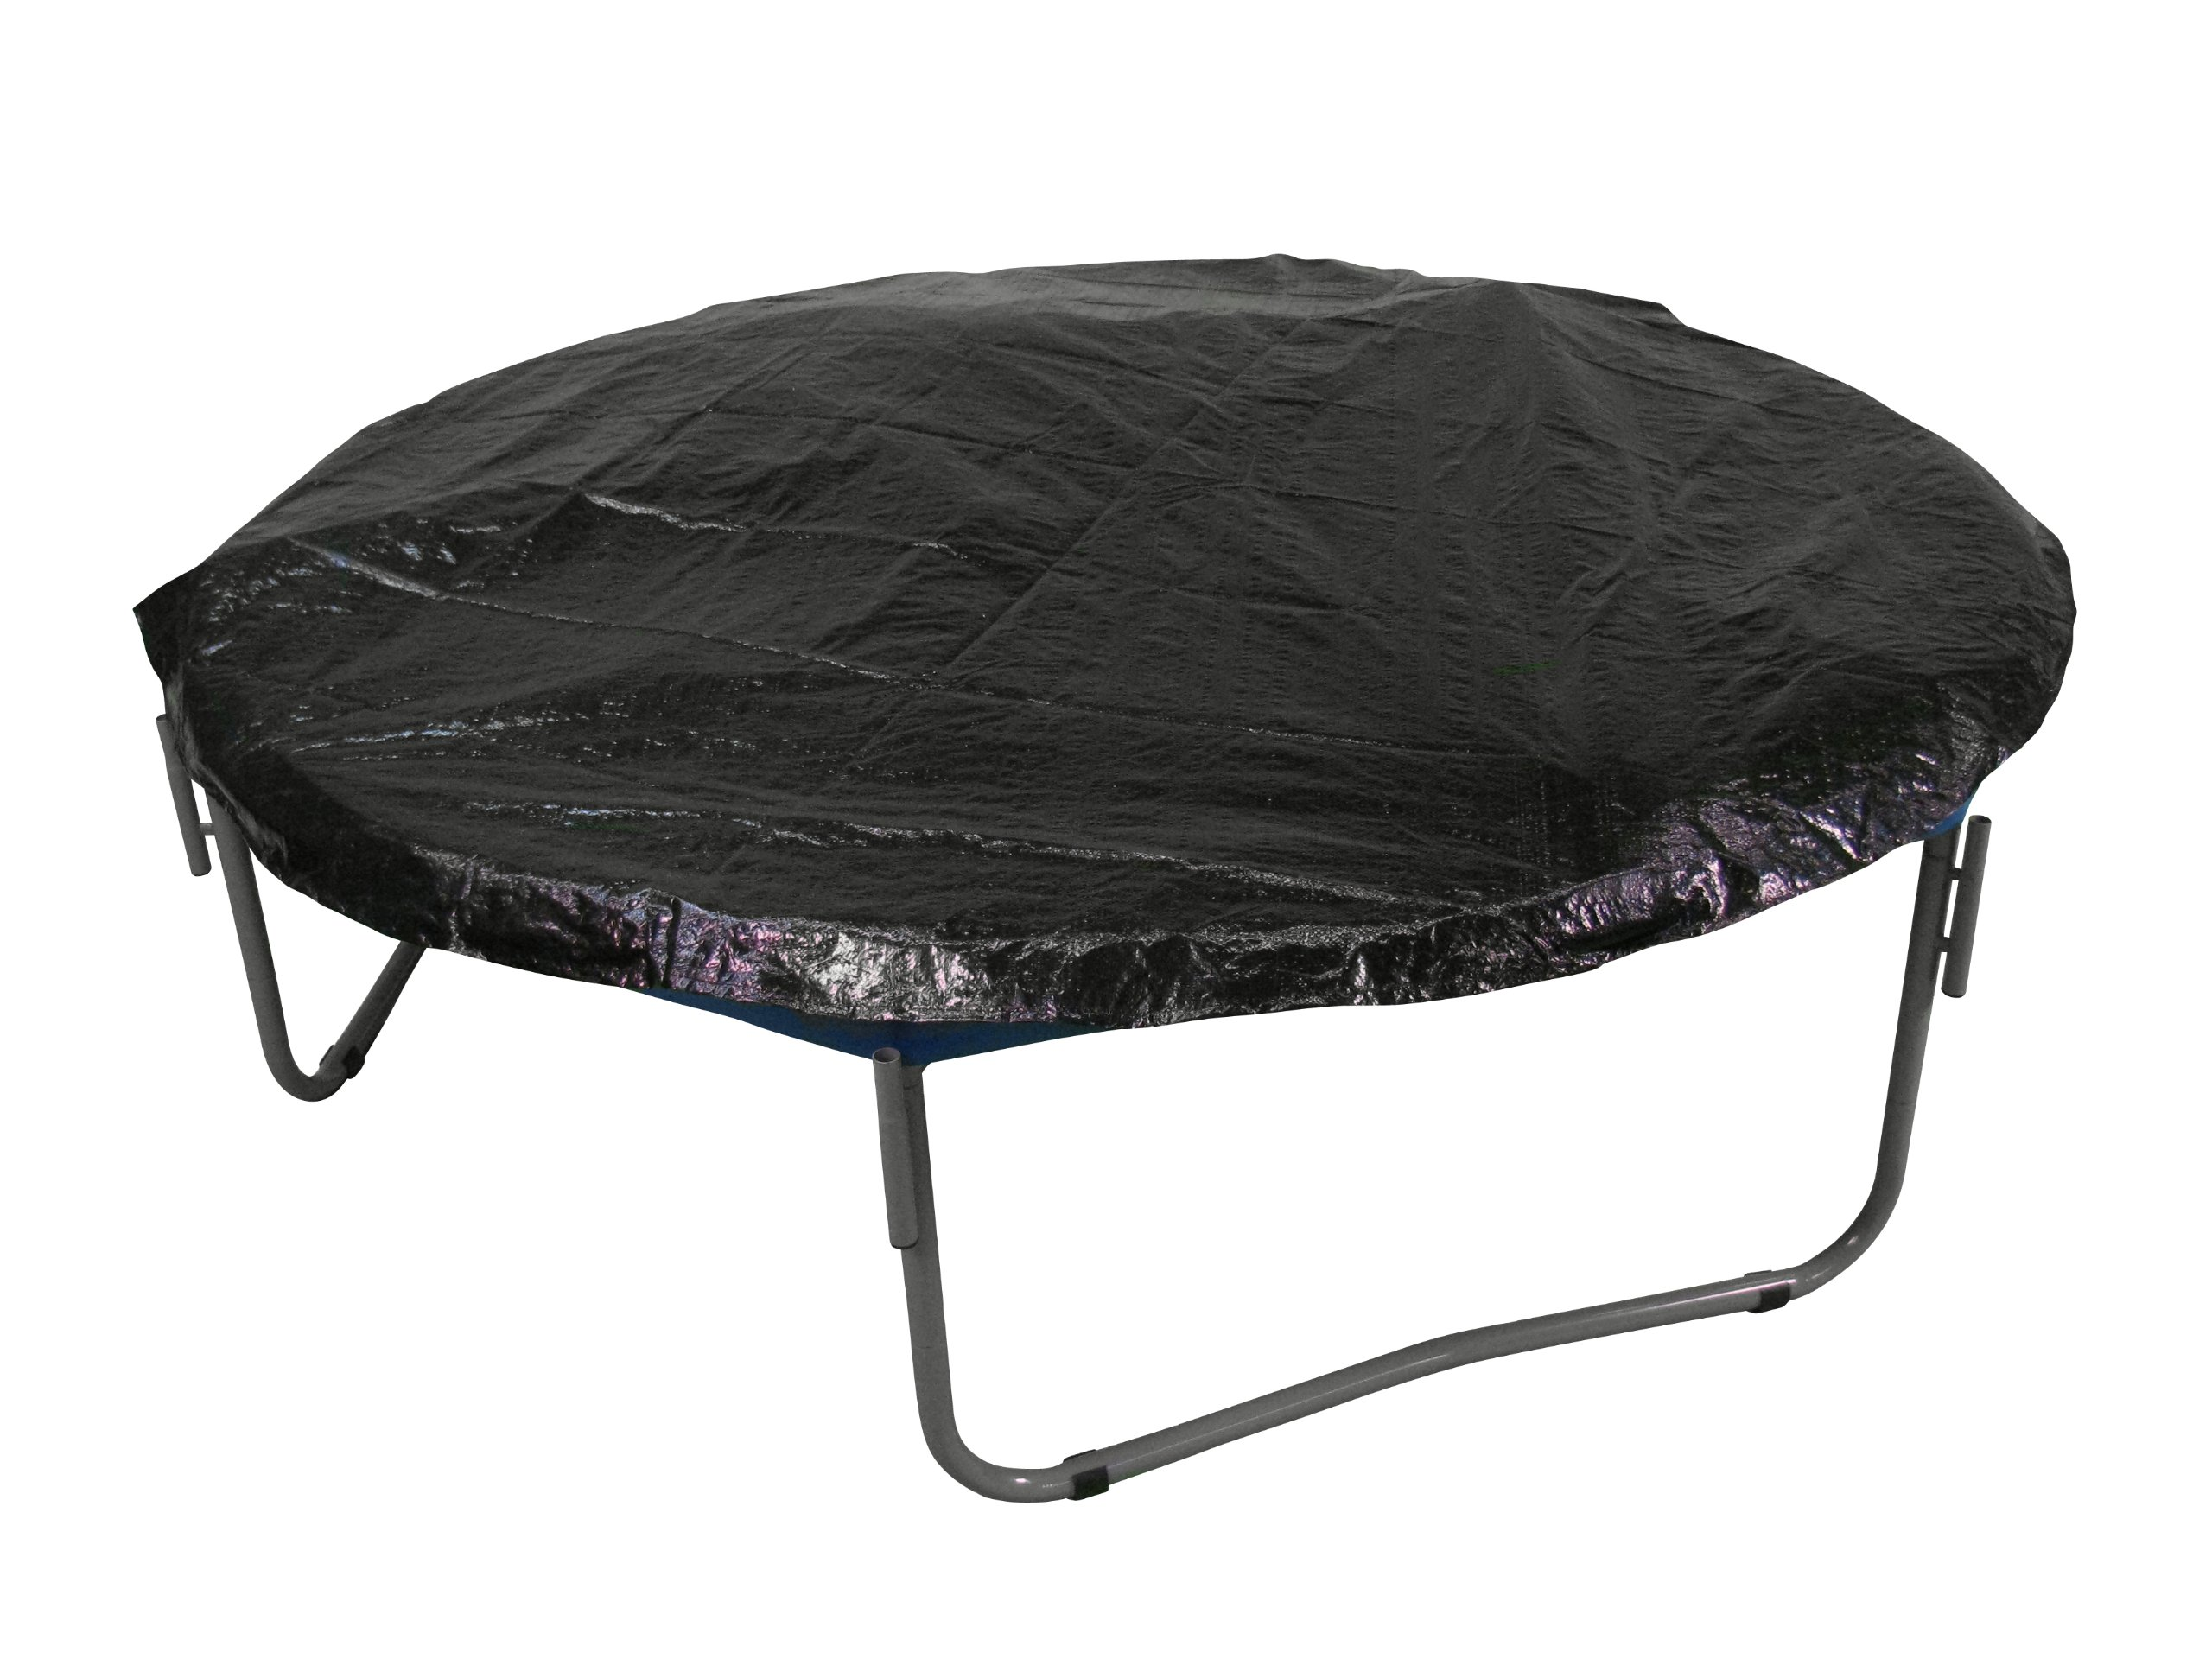 Upper Bounce Economy Trampoline Weather Protection Cover, Fits for Sports Power Model # TR-14COM-FLXTRU - Black